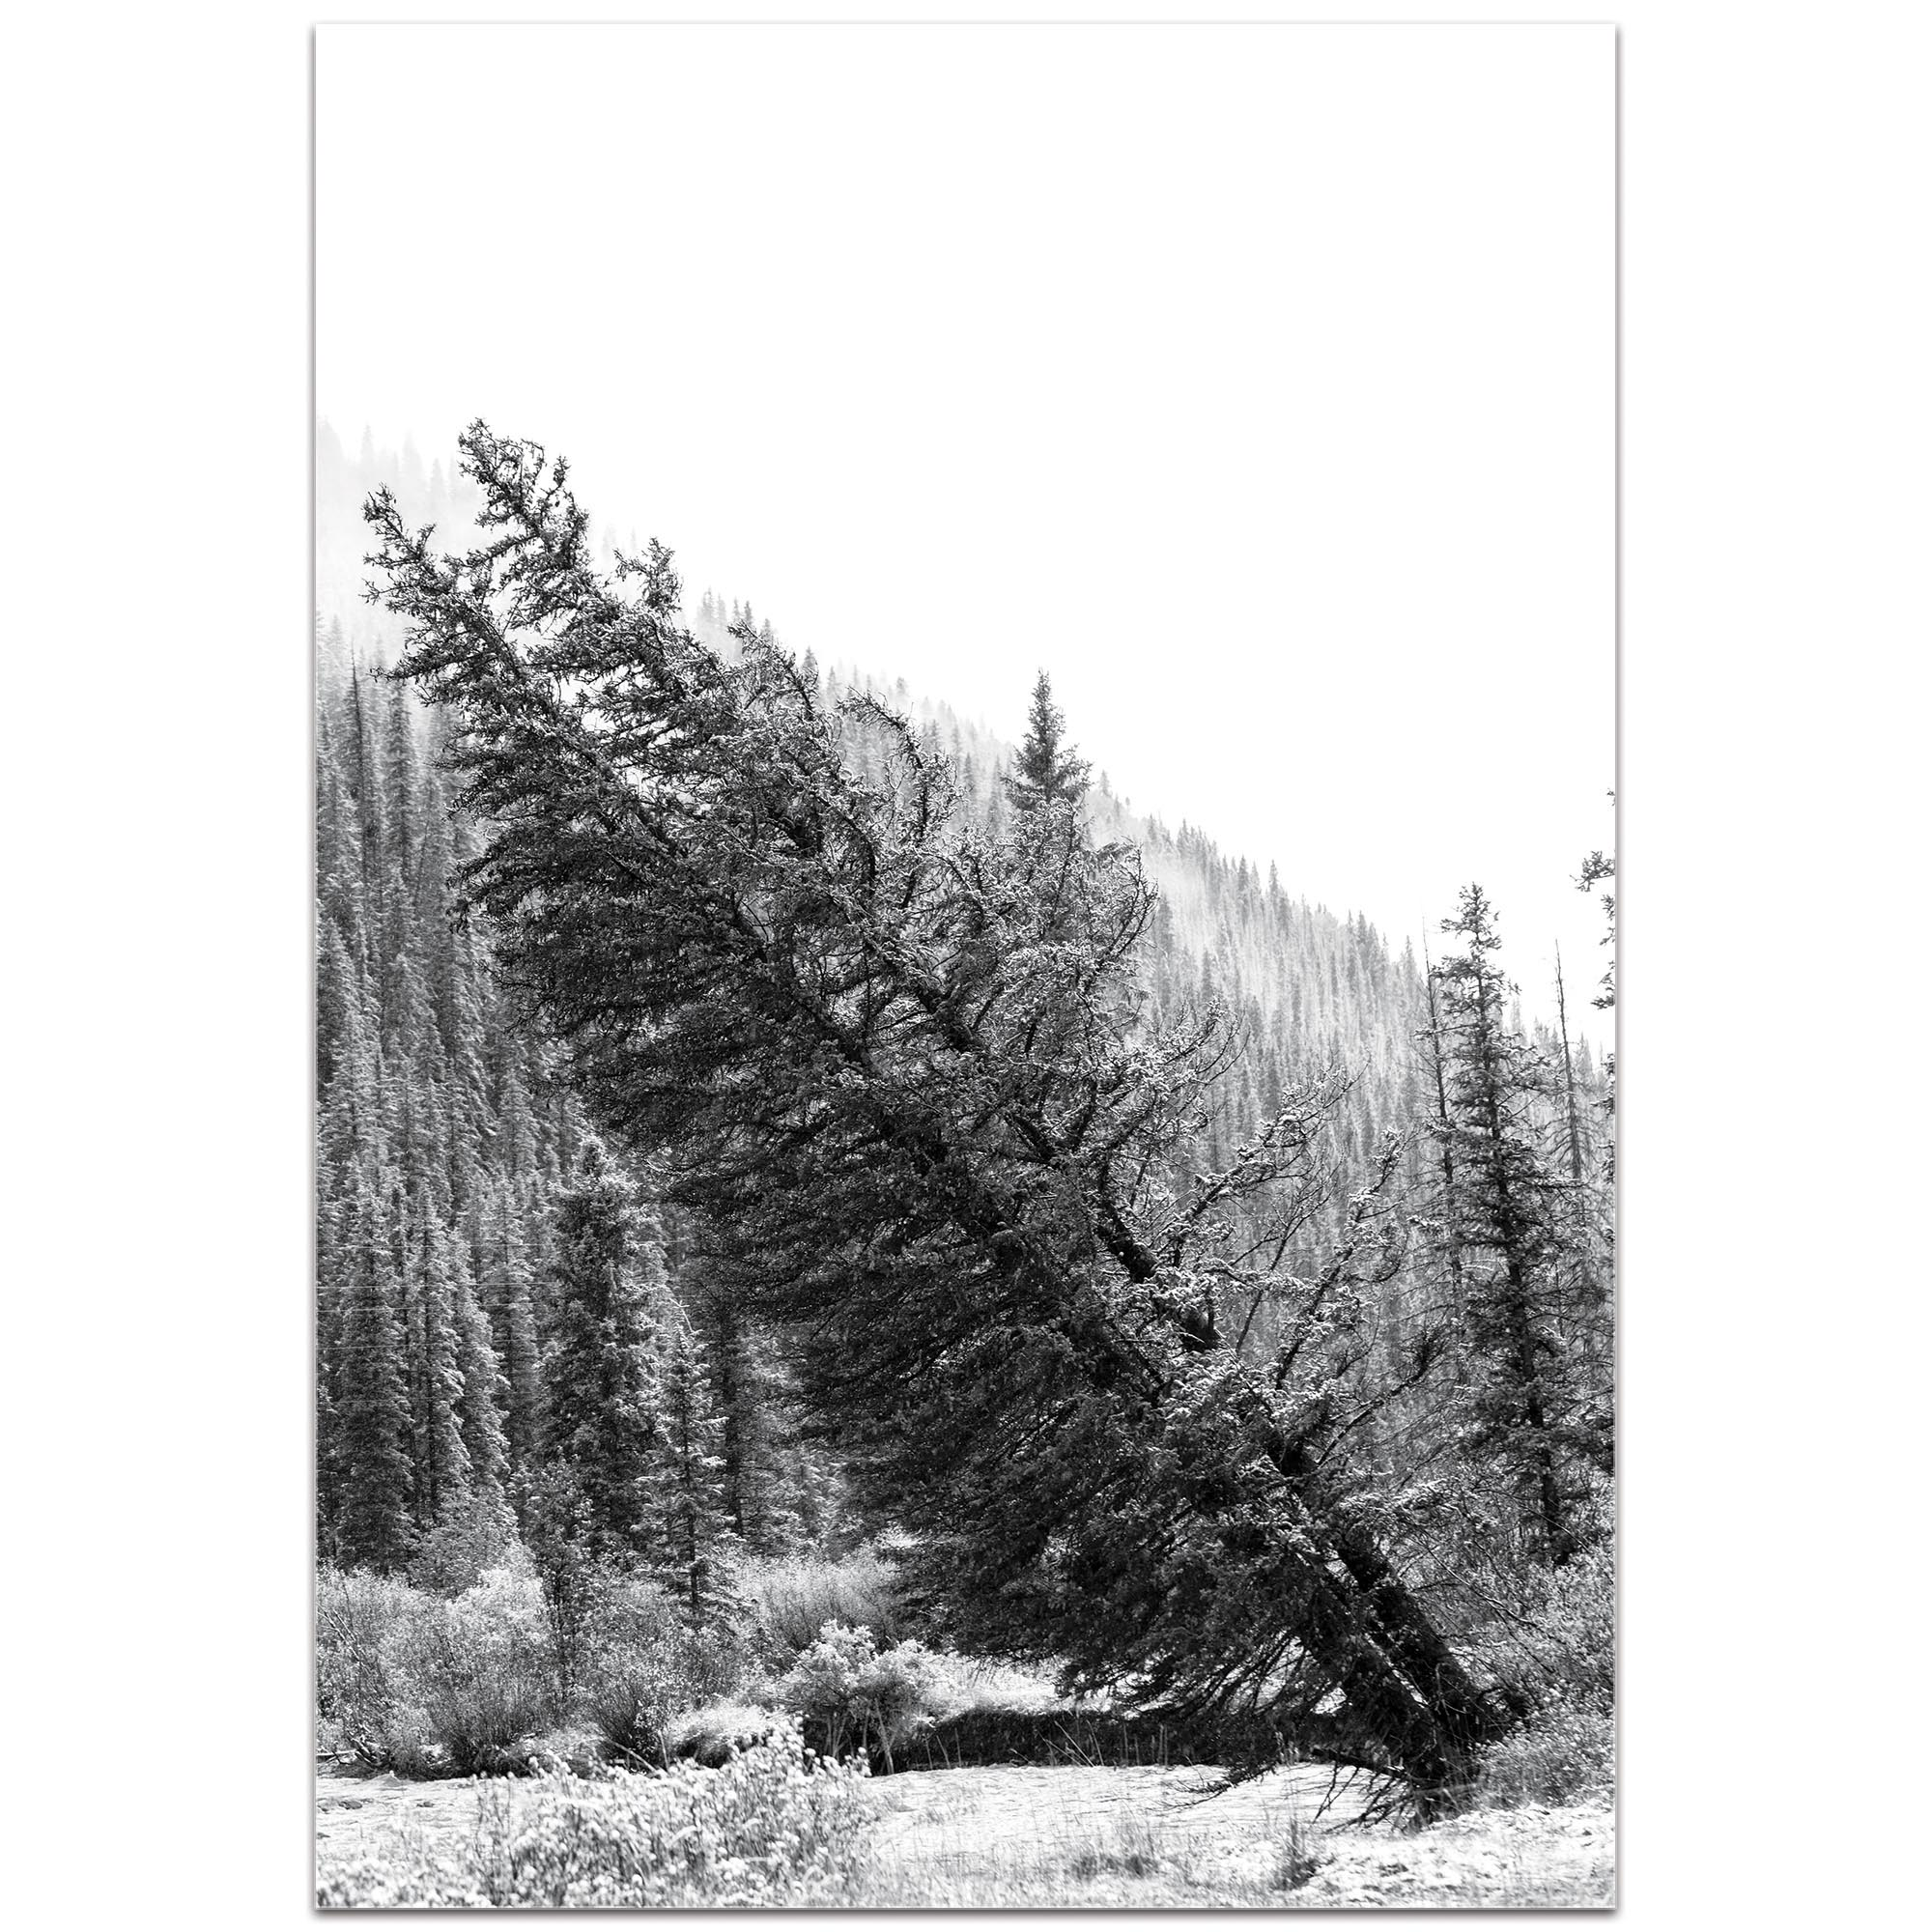 Black & White Photography 'Tilted Pines' - Winter Trees Art on Metal or Plexiglass - Image 2